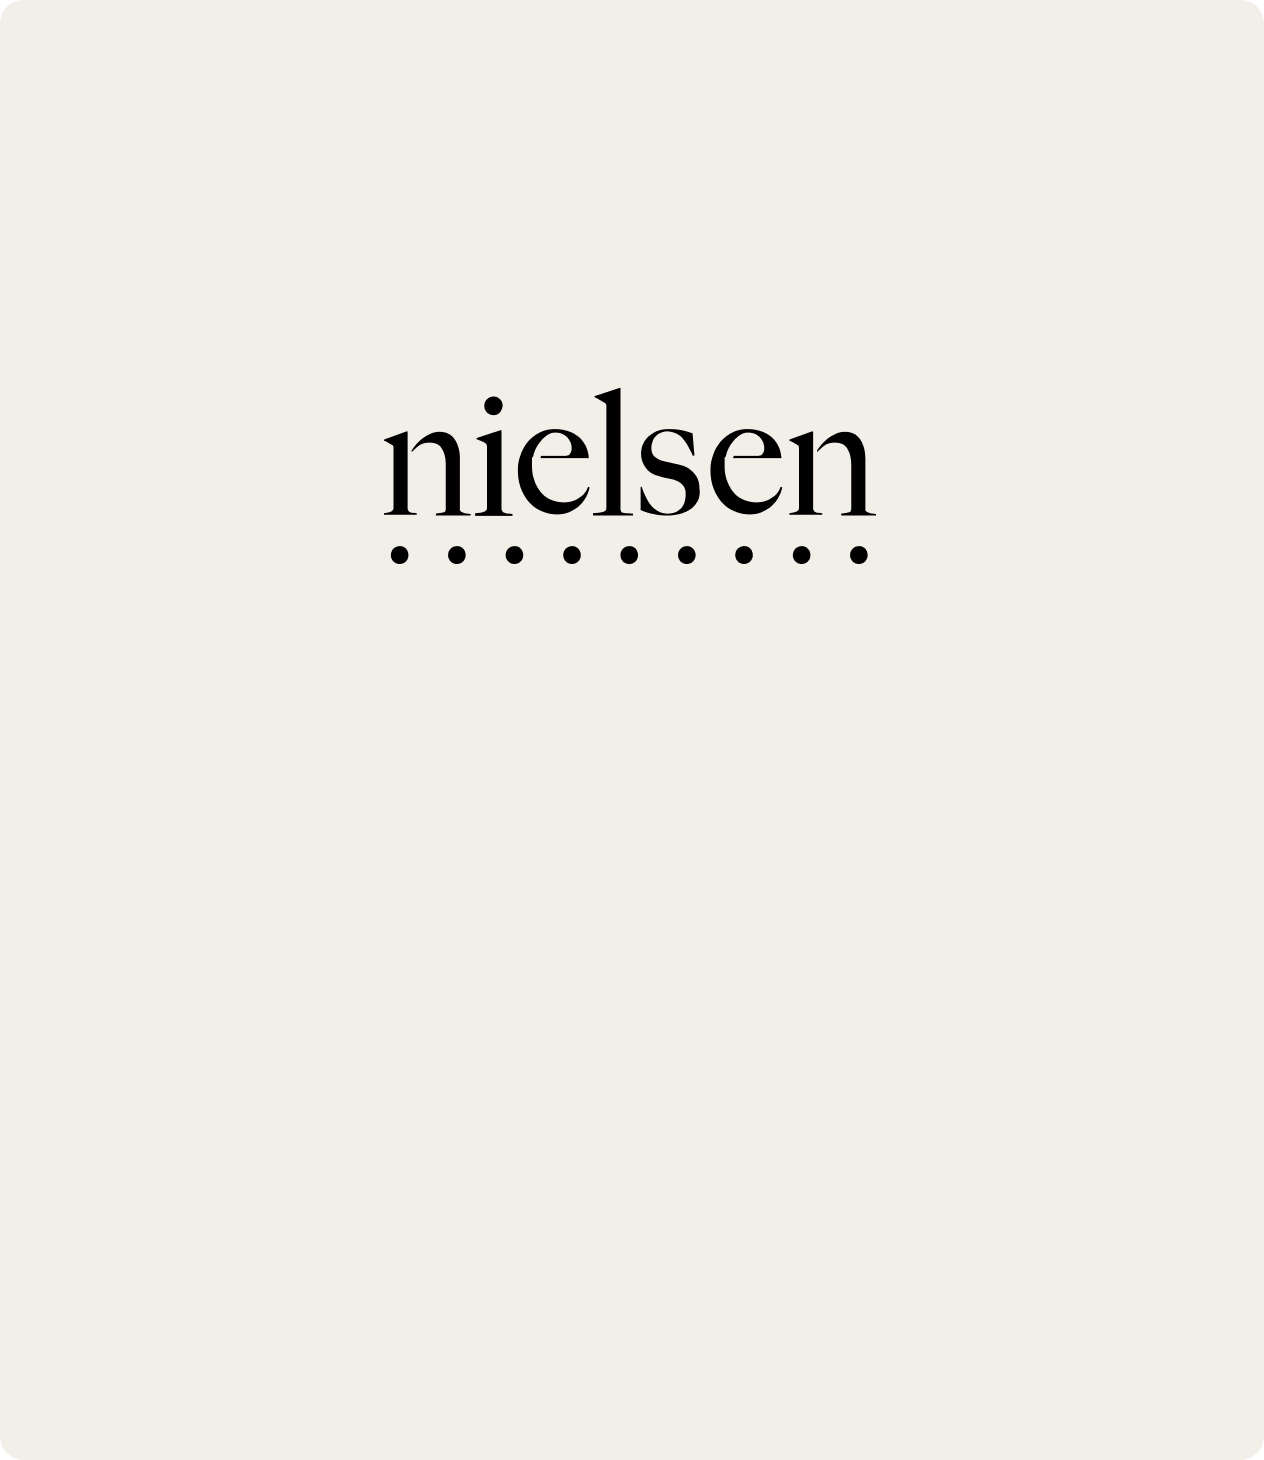 nielsen-background